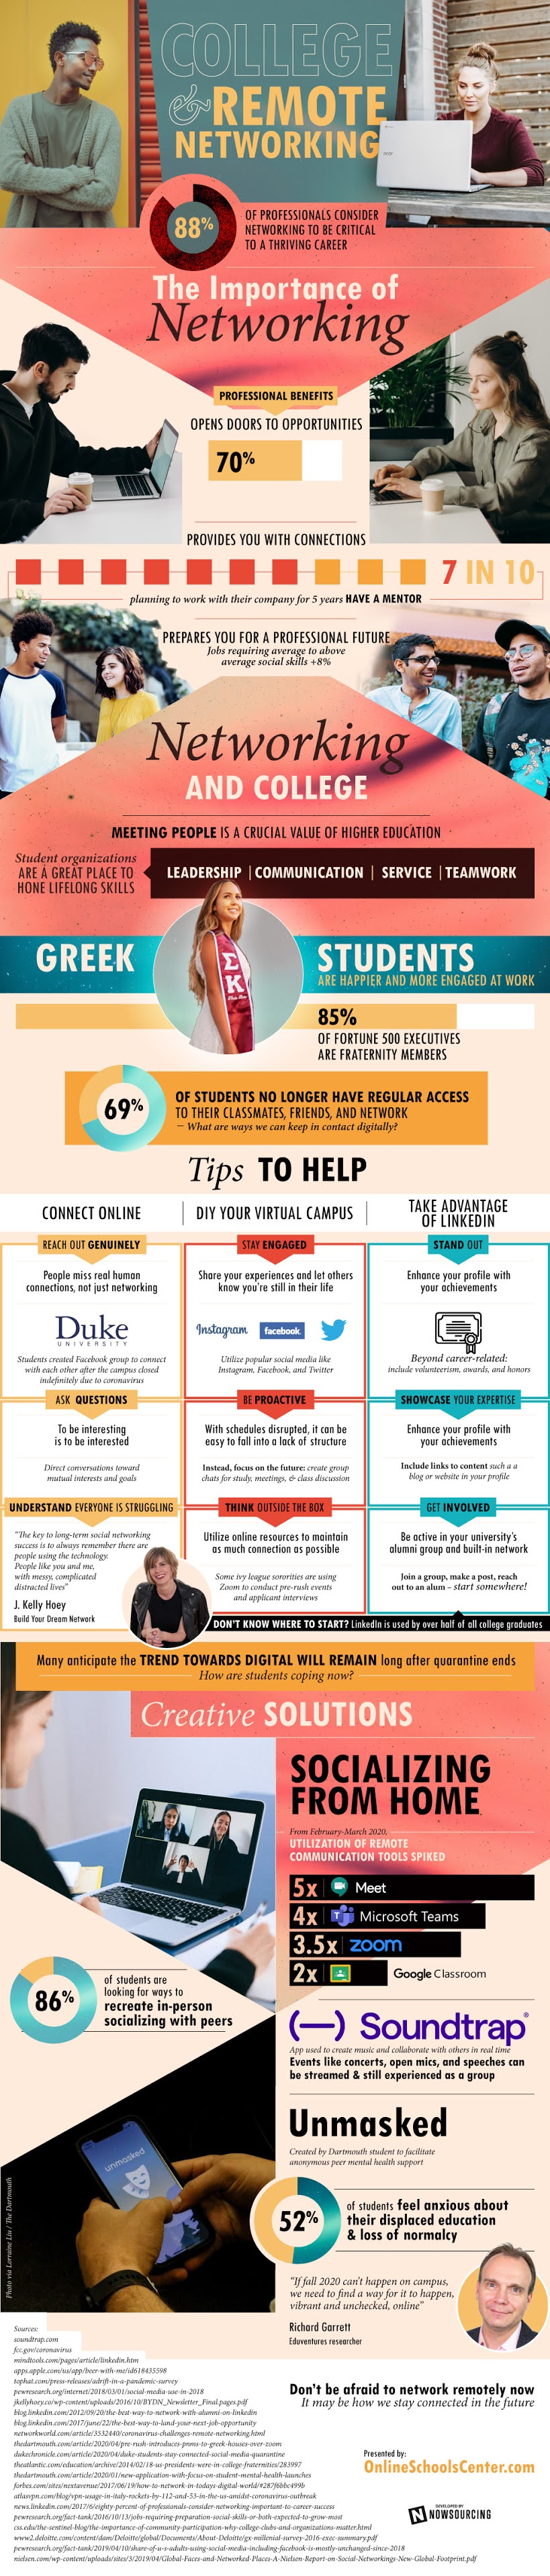 College & Remote Networking #infographic